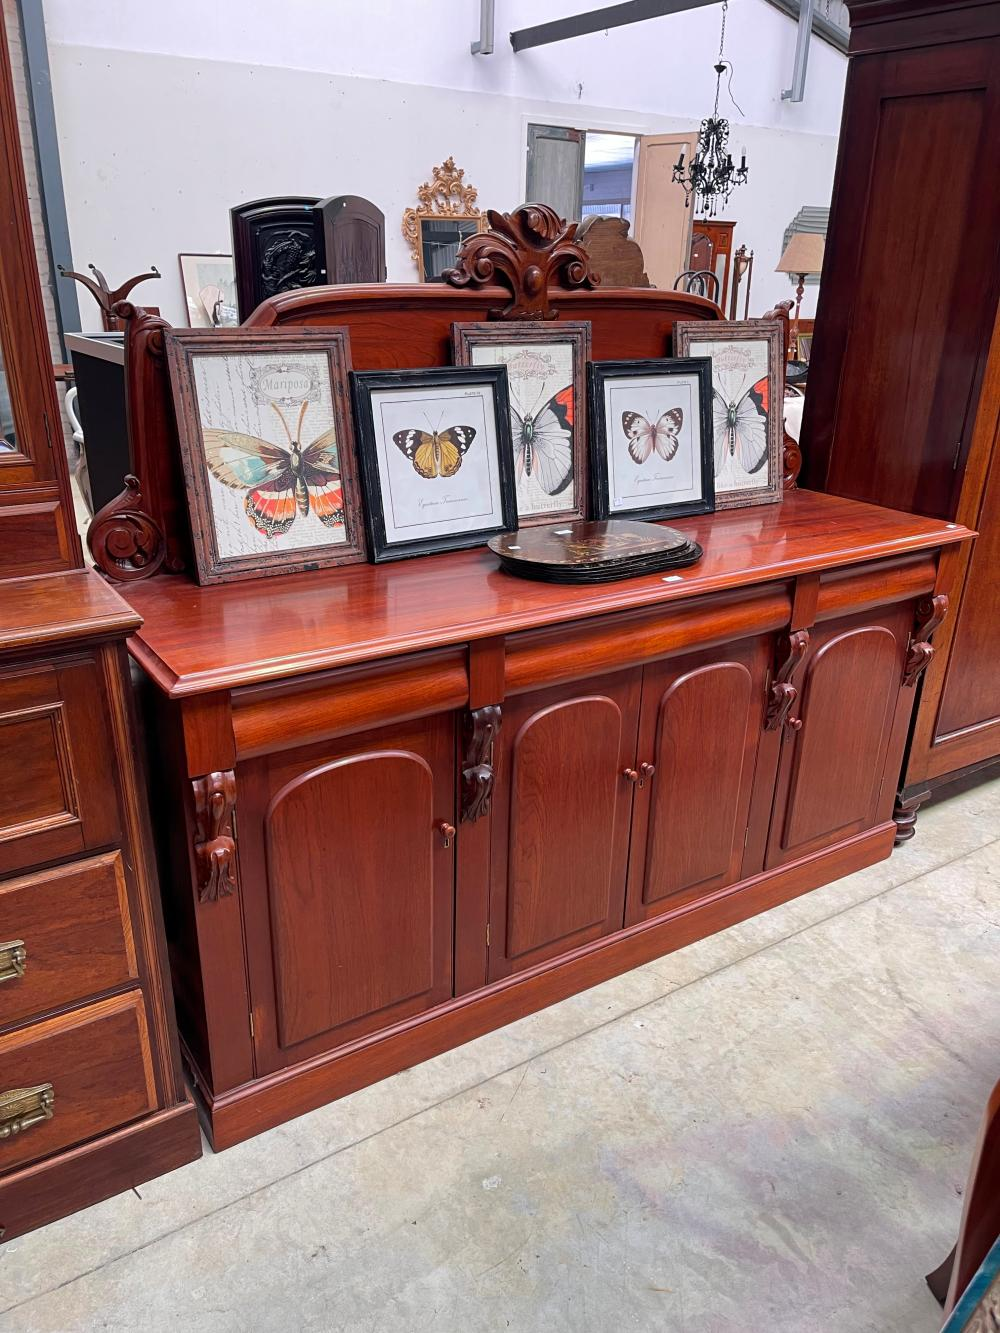 Antique Victorian cedar four drawer and door sideboard, approx 98cm H x 198cm W x 56cm D base only, top is removable, approx 70 cm high at the highest point of carving